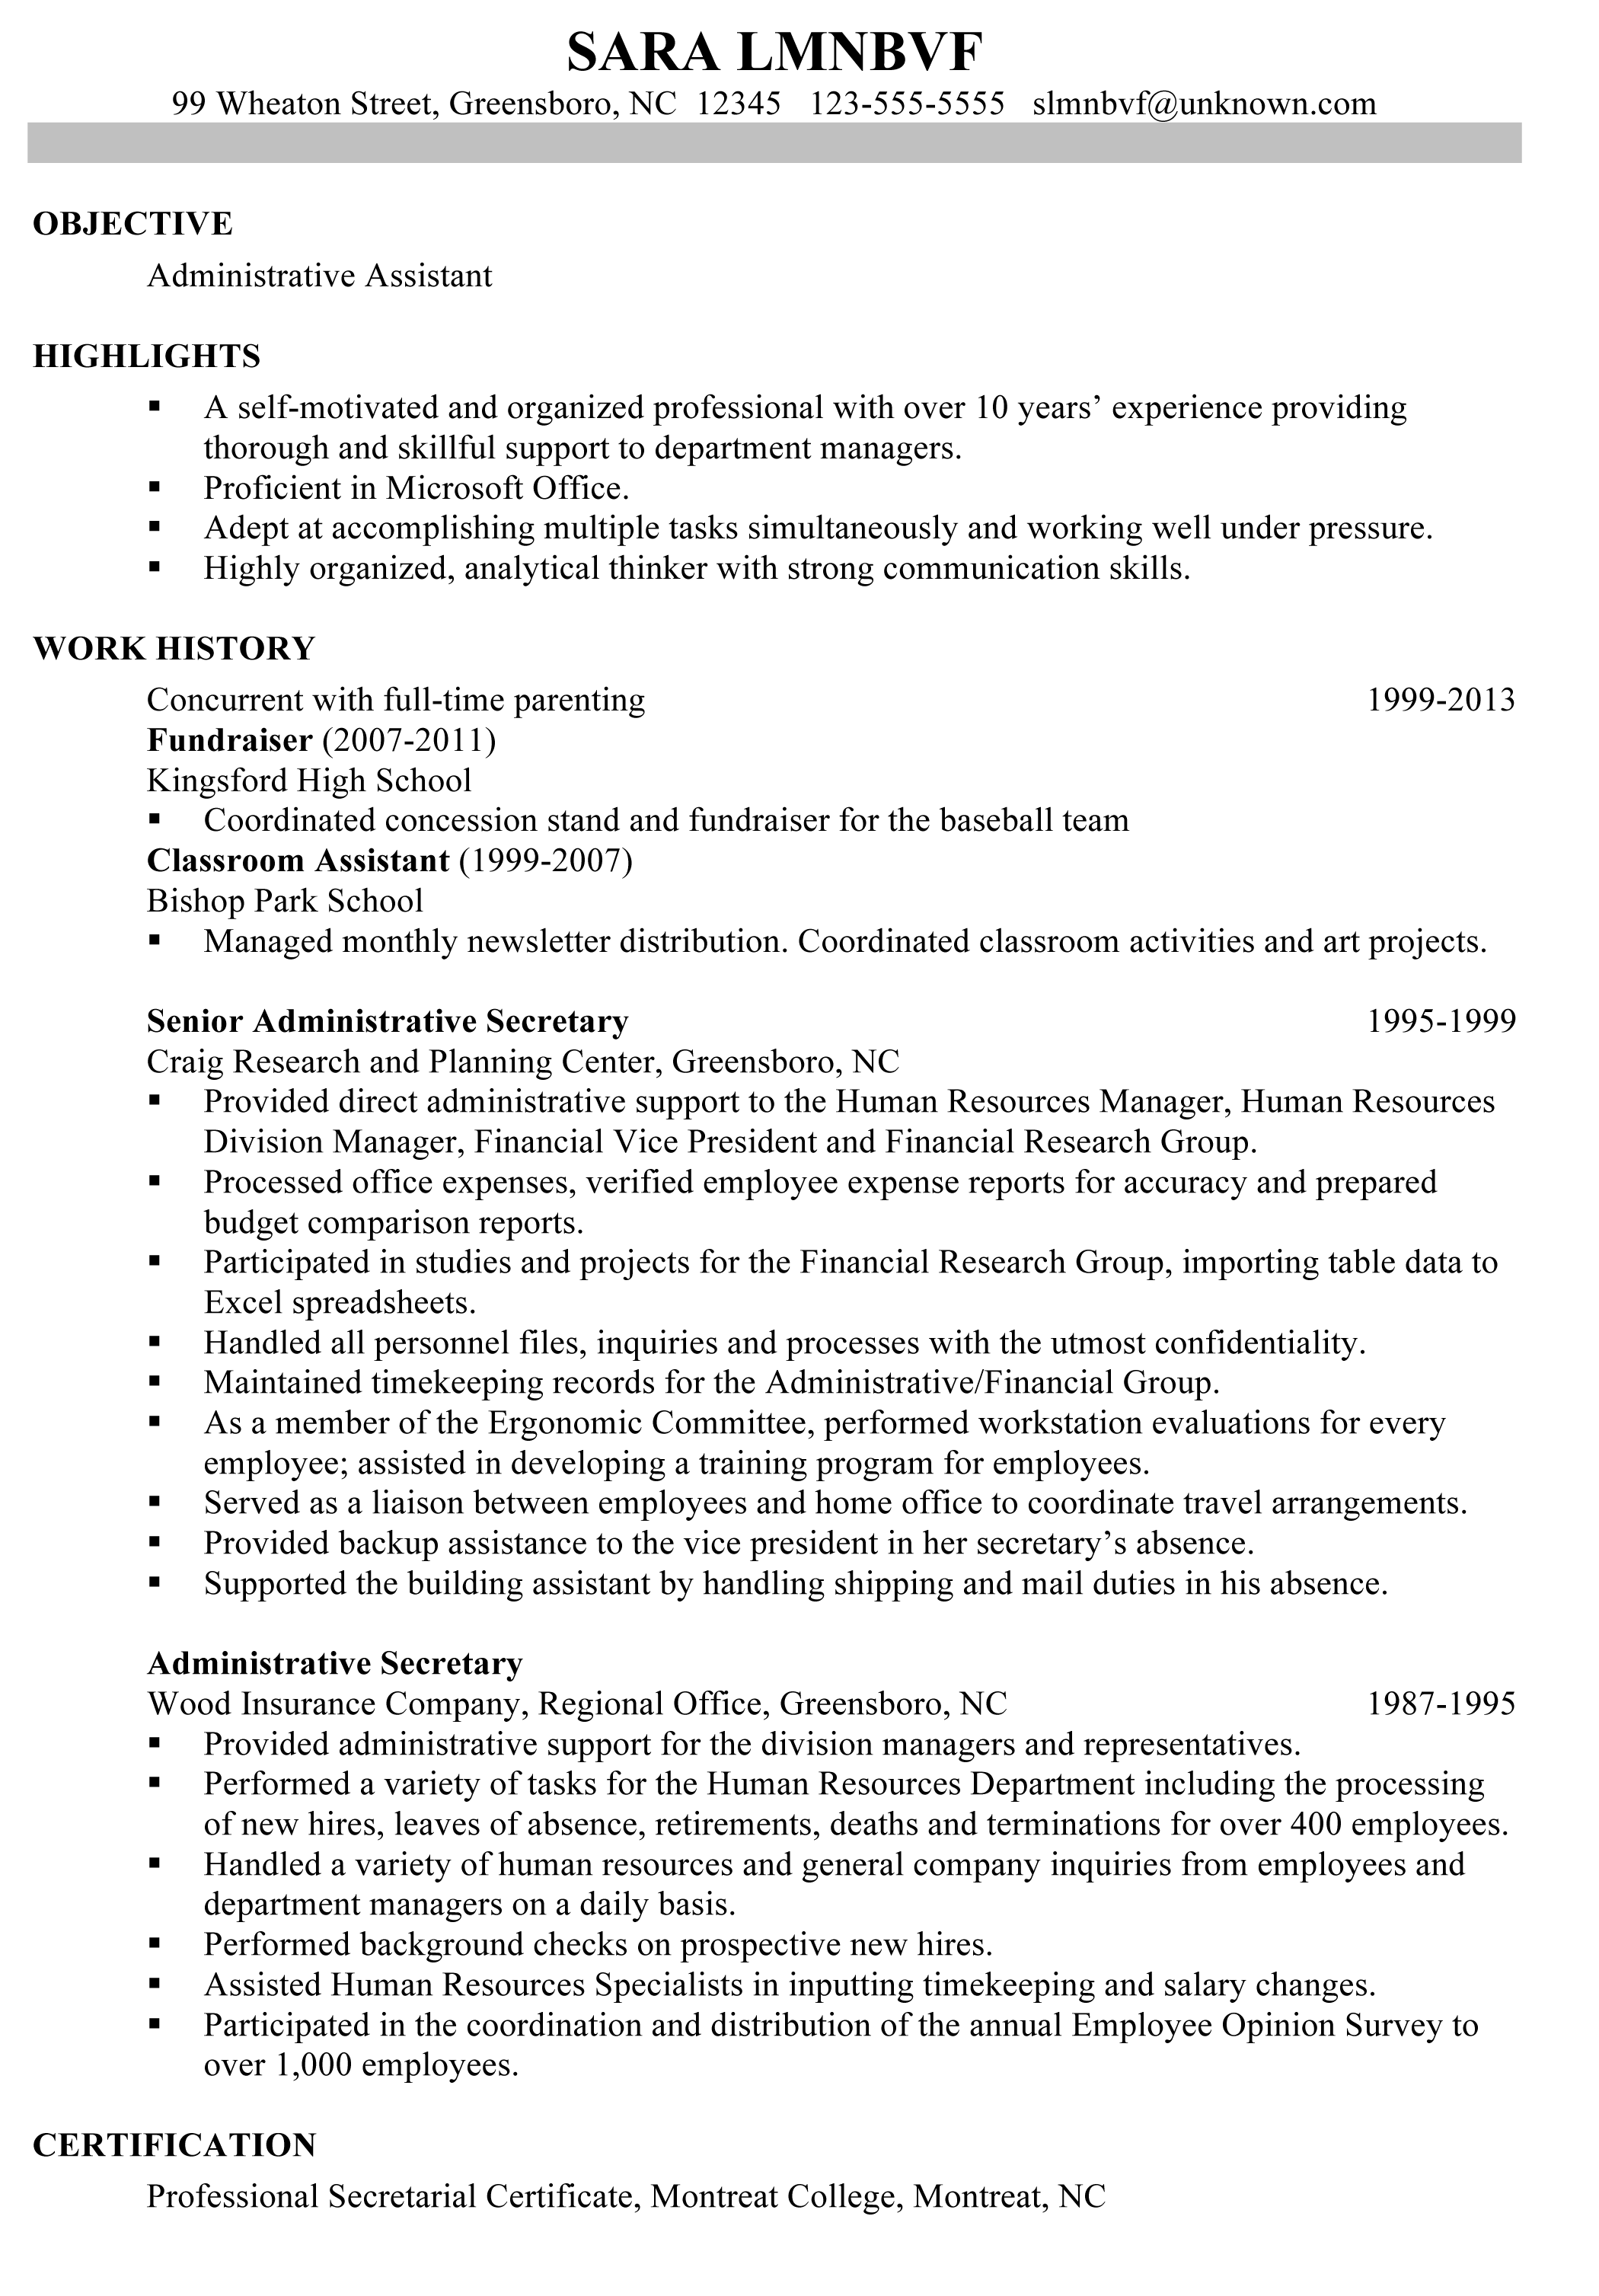 professional resume template great administrative assistant resumes using professional resume templates from my ready made resume builder - How To Write A Professional Resume Examples